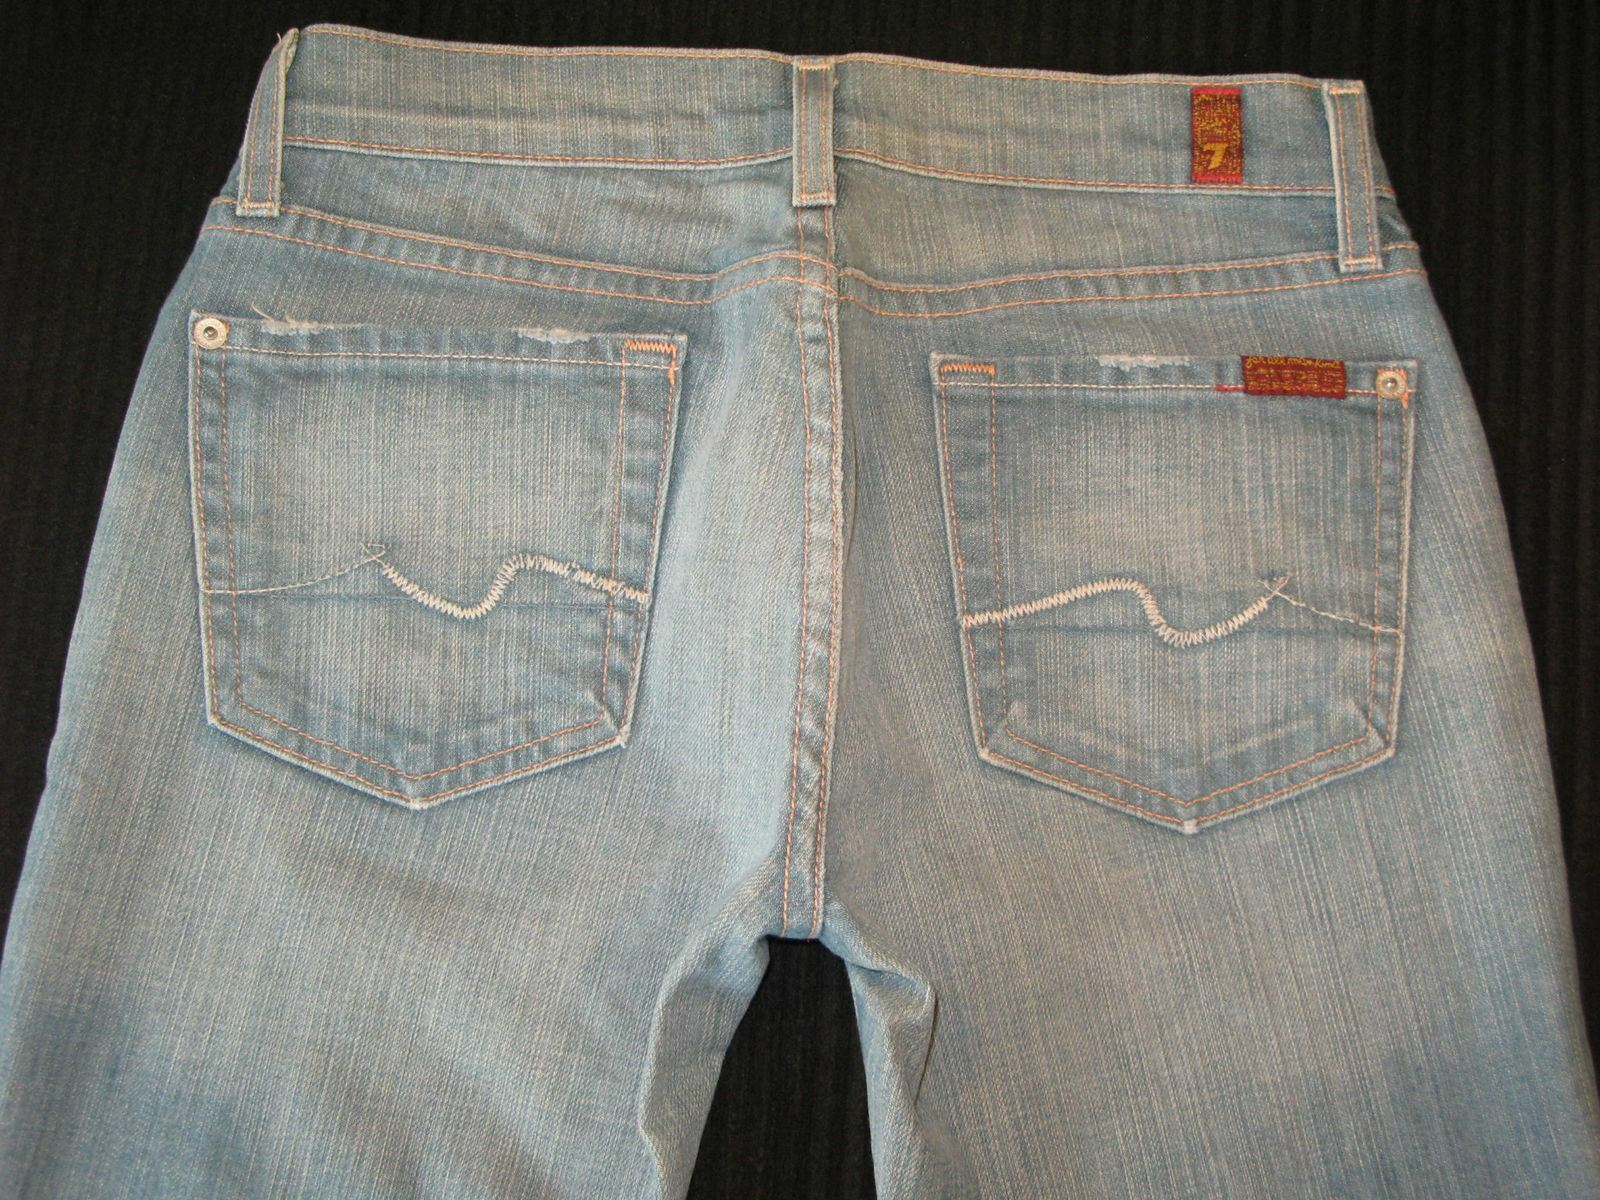 7 for all Mankind Womens Bootcut Jeans Sz 26 w Stretch USA made